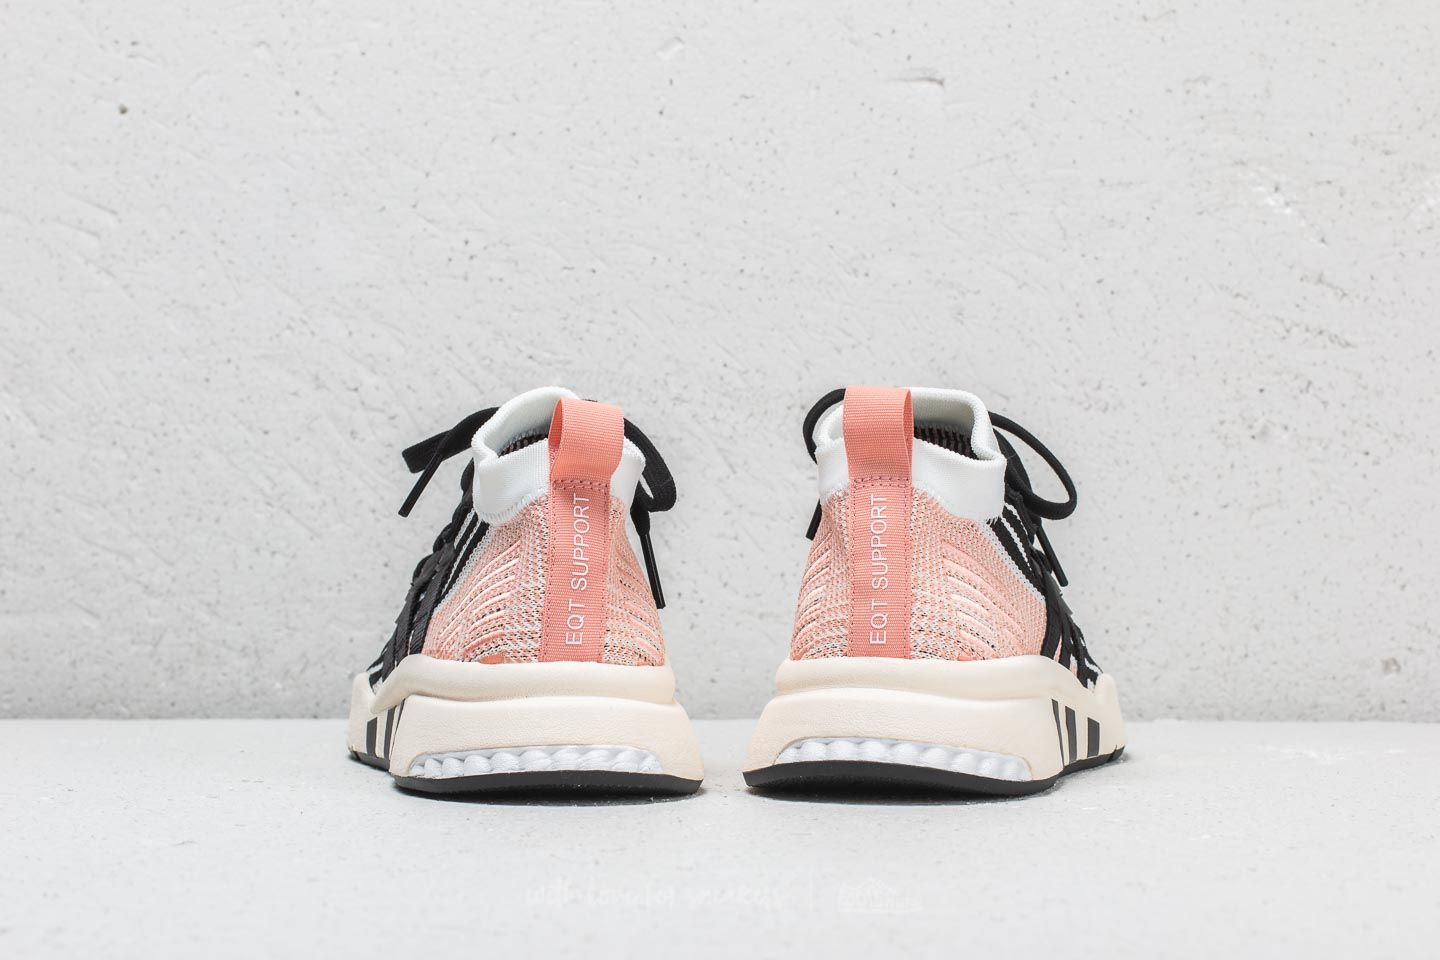 Adidas Eqt Support Mid Adv Pk Cloud White Core Black Trace Pink